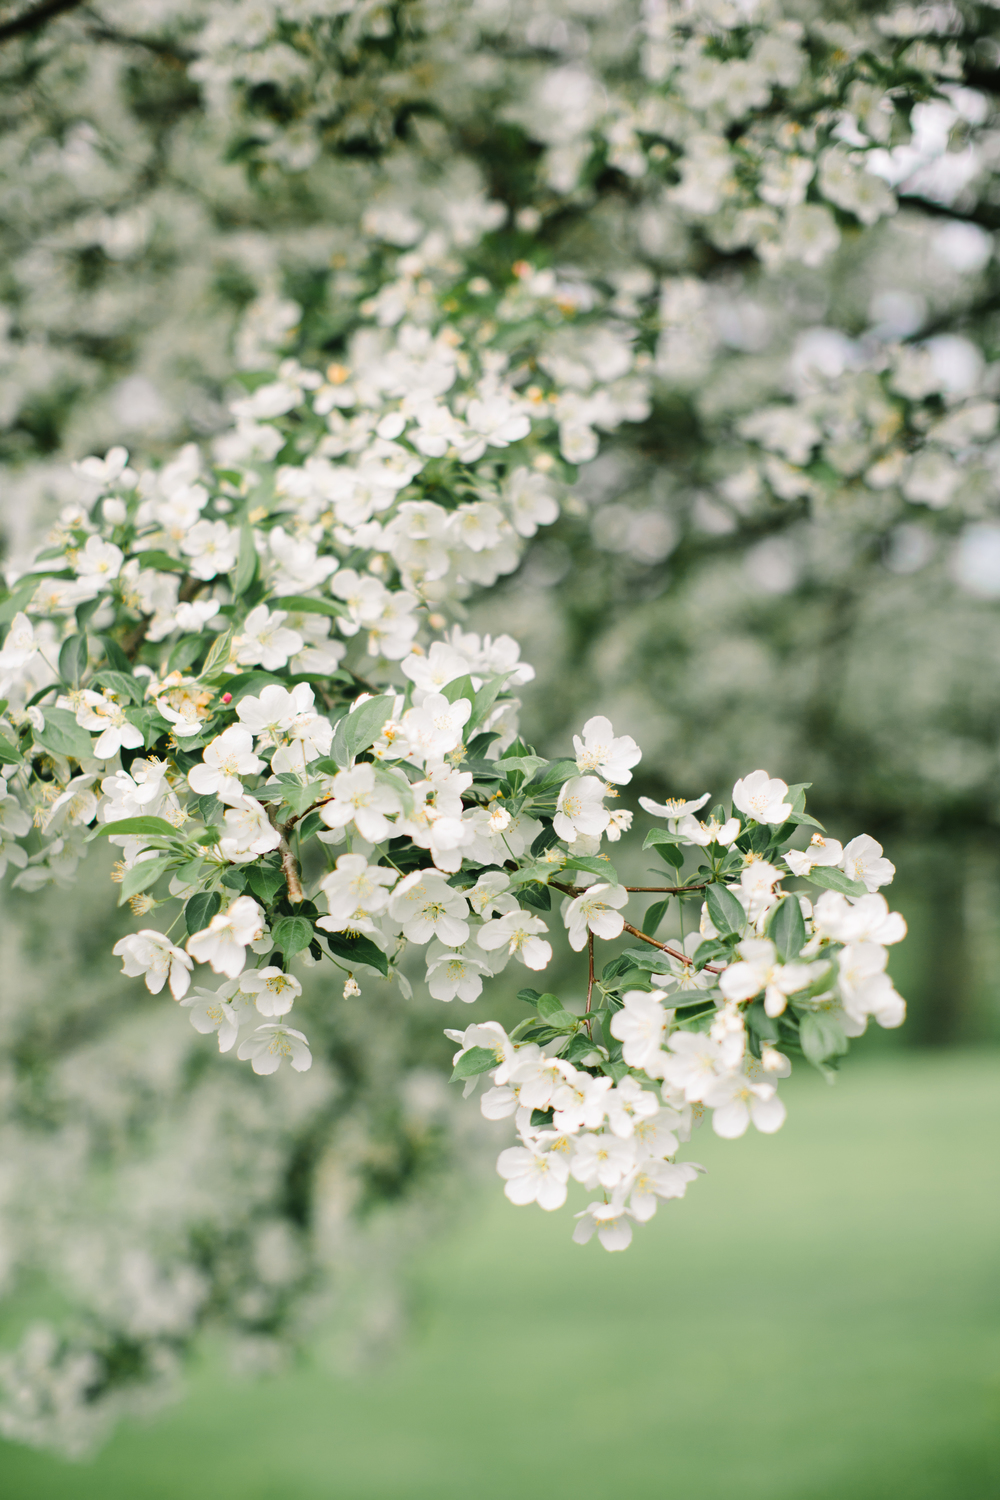 vermont spring apple blossom wedding inspiration